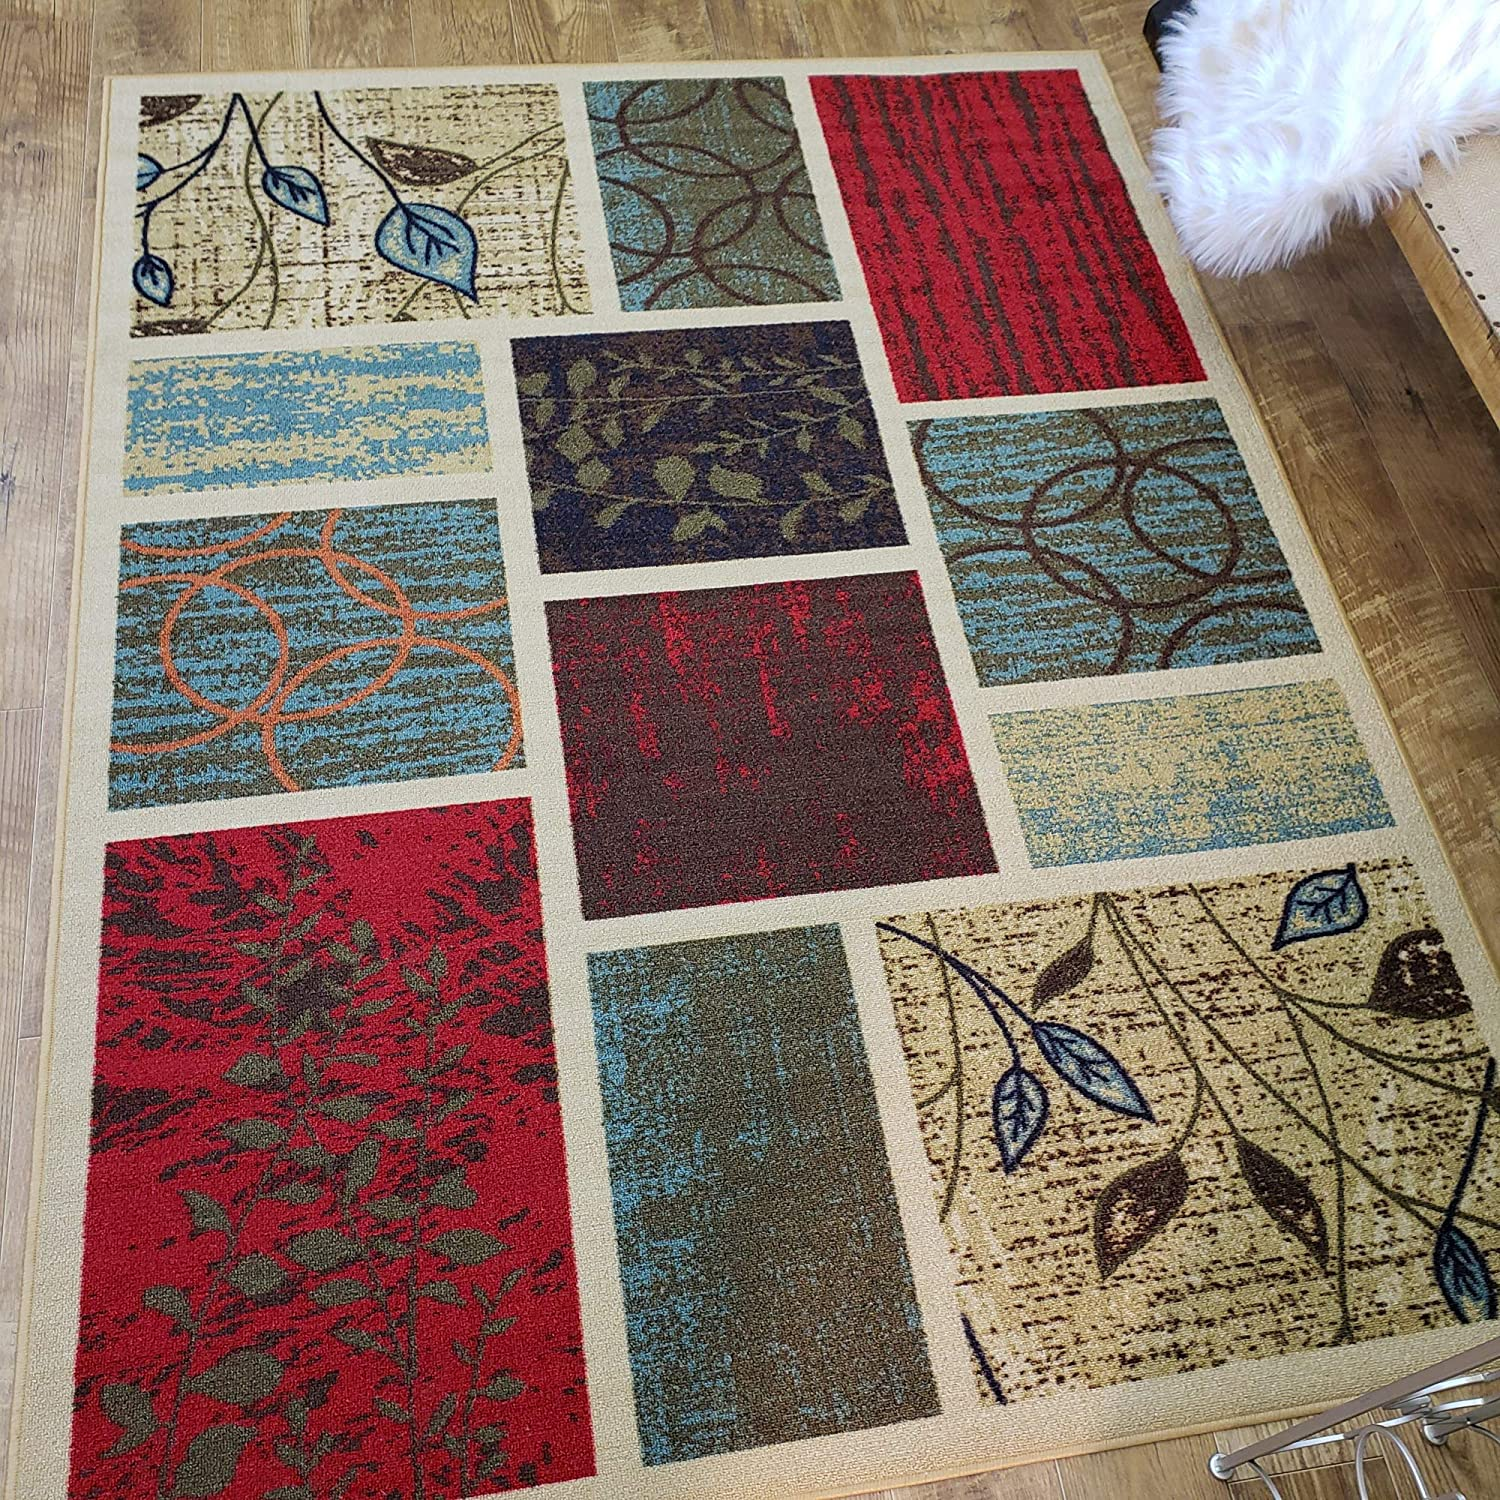 Area Rug 5x7 Beige Squares Kitchen Rugs and mats | Rubber Backed Non Skid Living Room Bathroom Nursery Home Decor Under Door Entryway Floor Non Slip Washable | Made in Europe